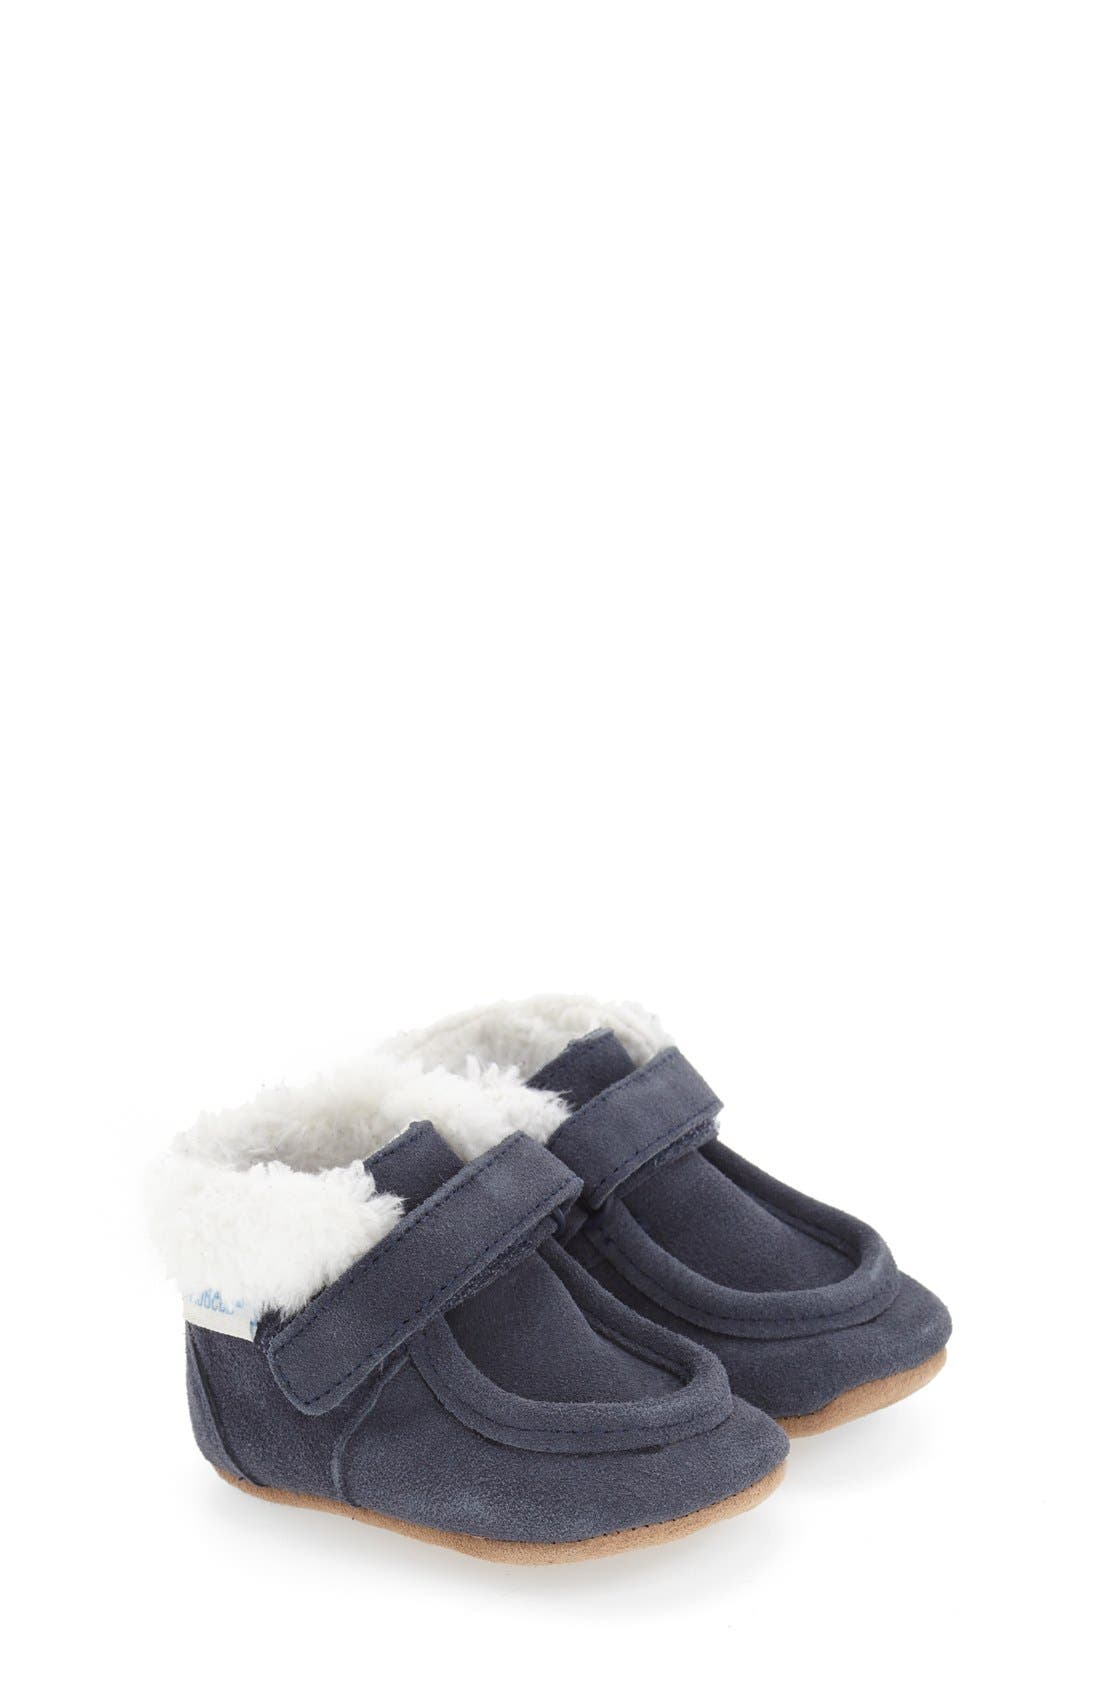 'Sawyer Snuggle' Crib Shoe,                             Main thumbnail 1, color,                             Navy Leather